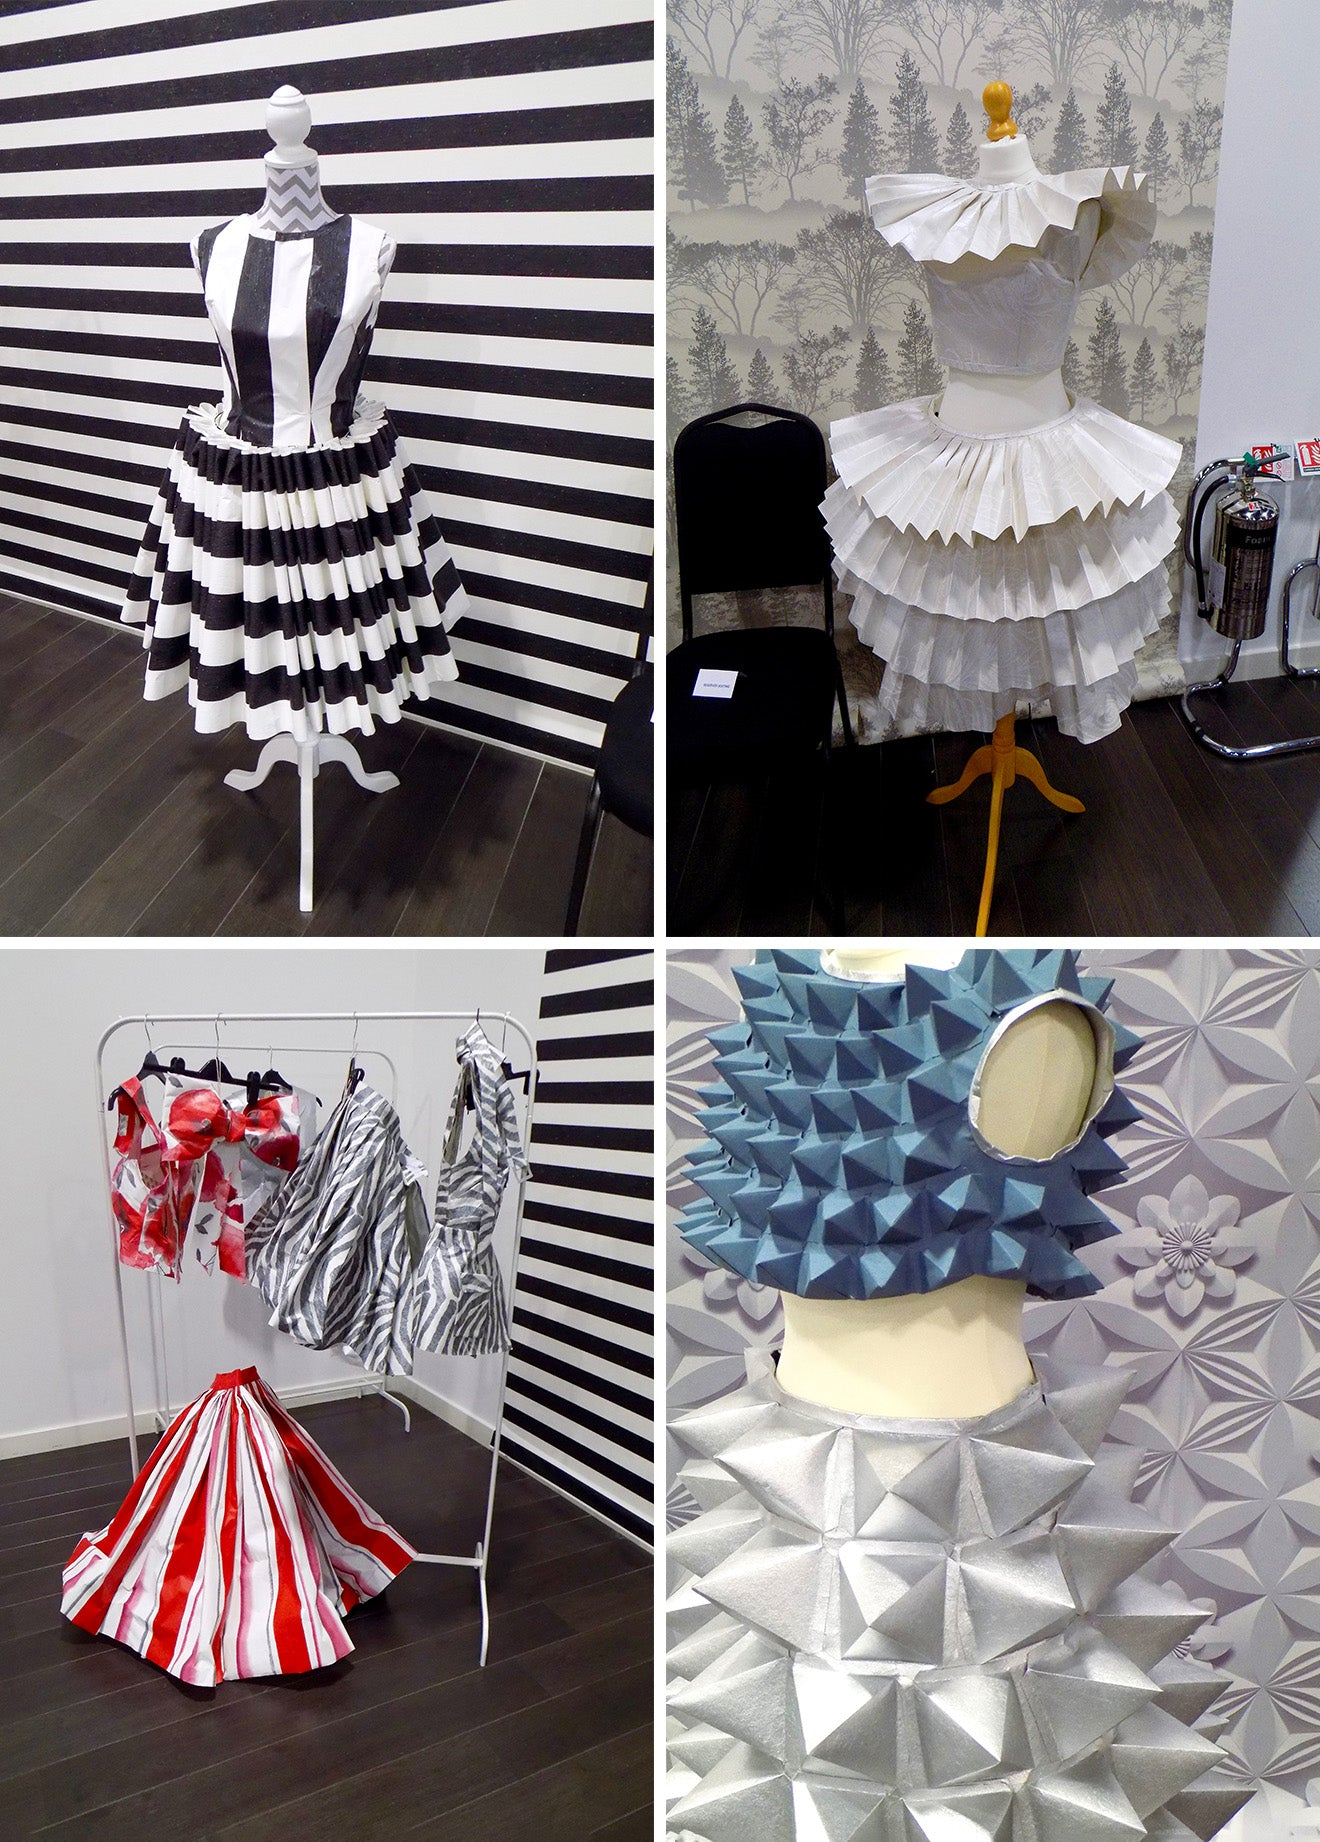 Fashion dresses made entirely from wallpaper